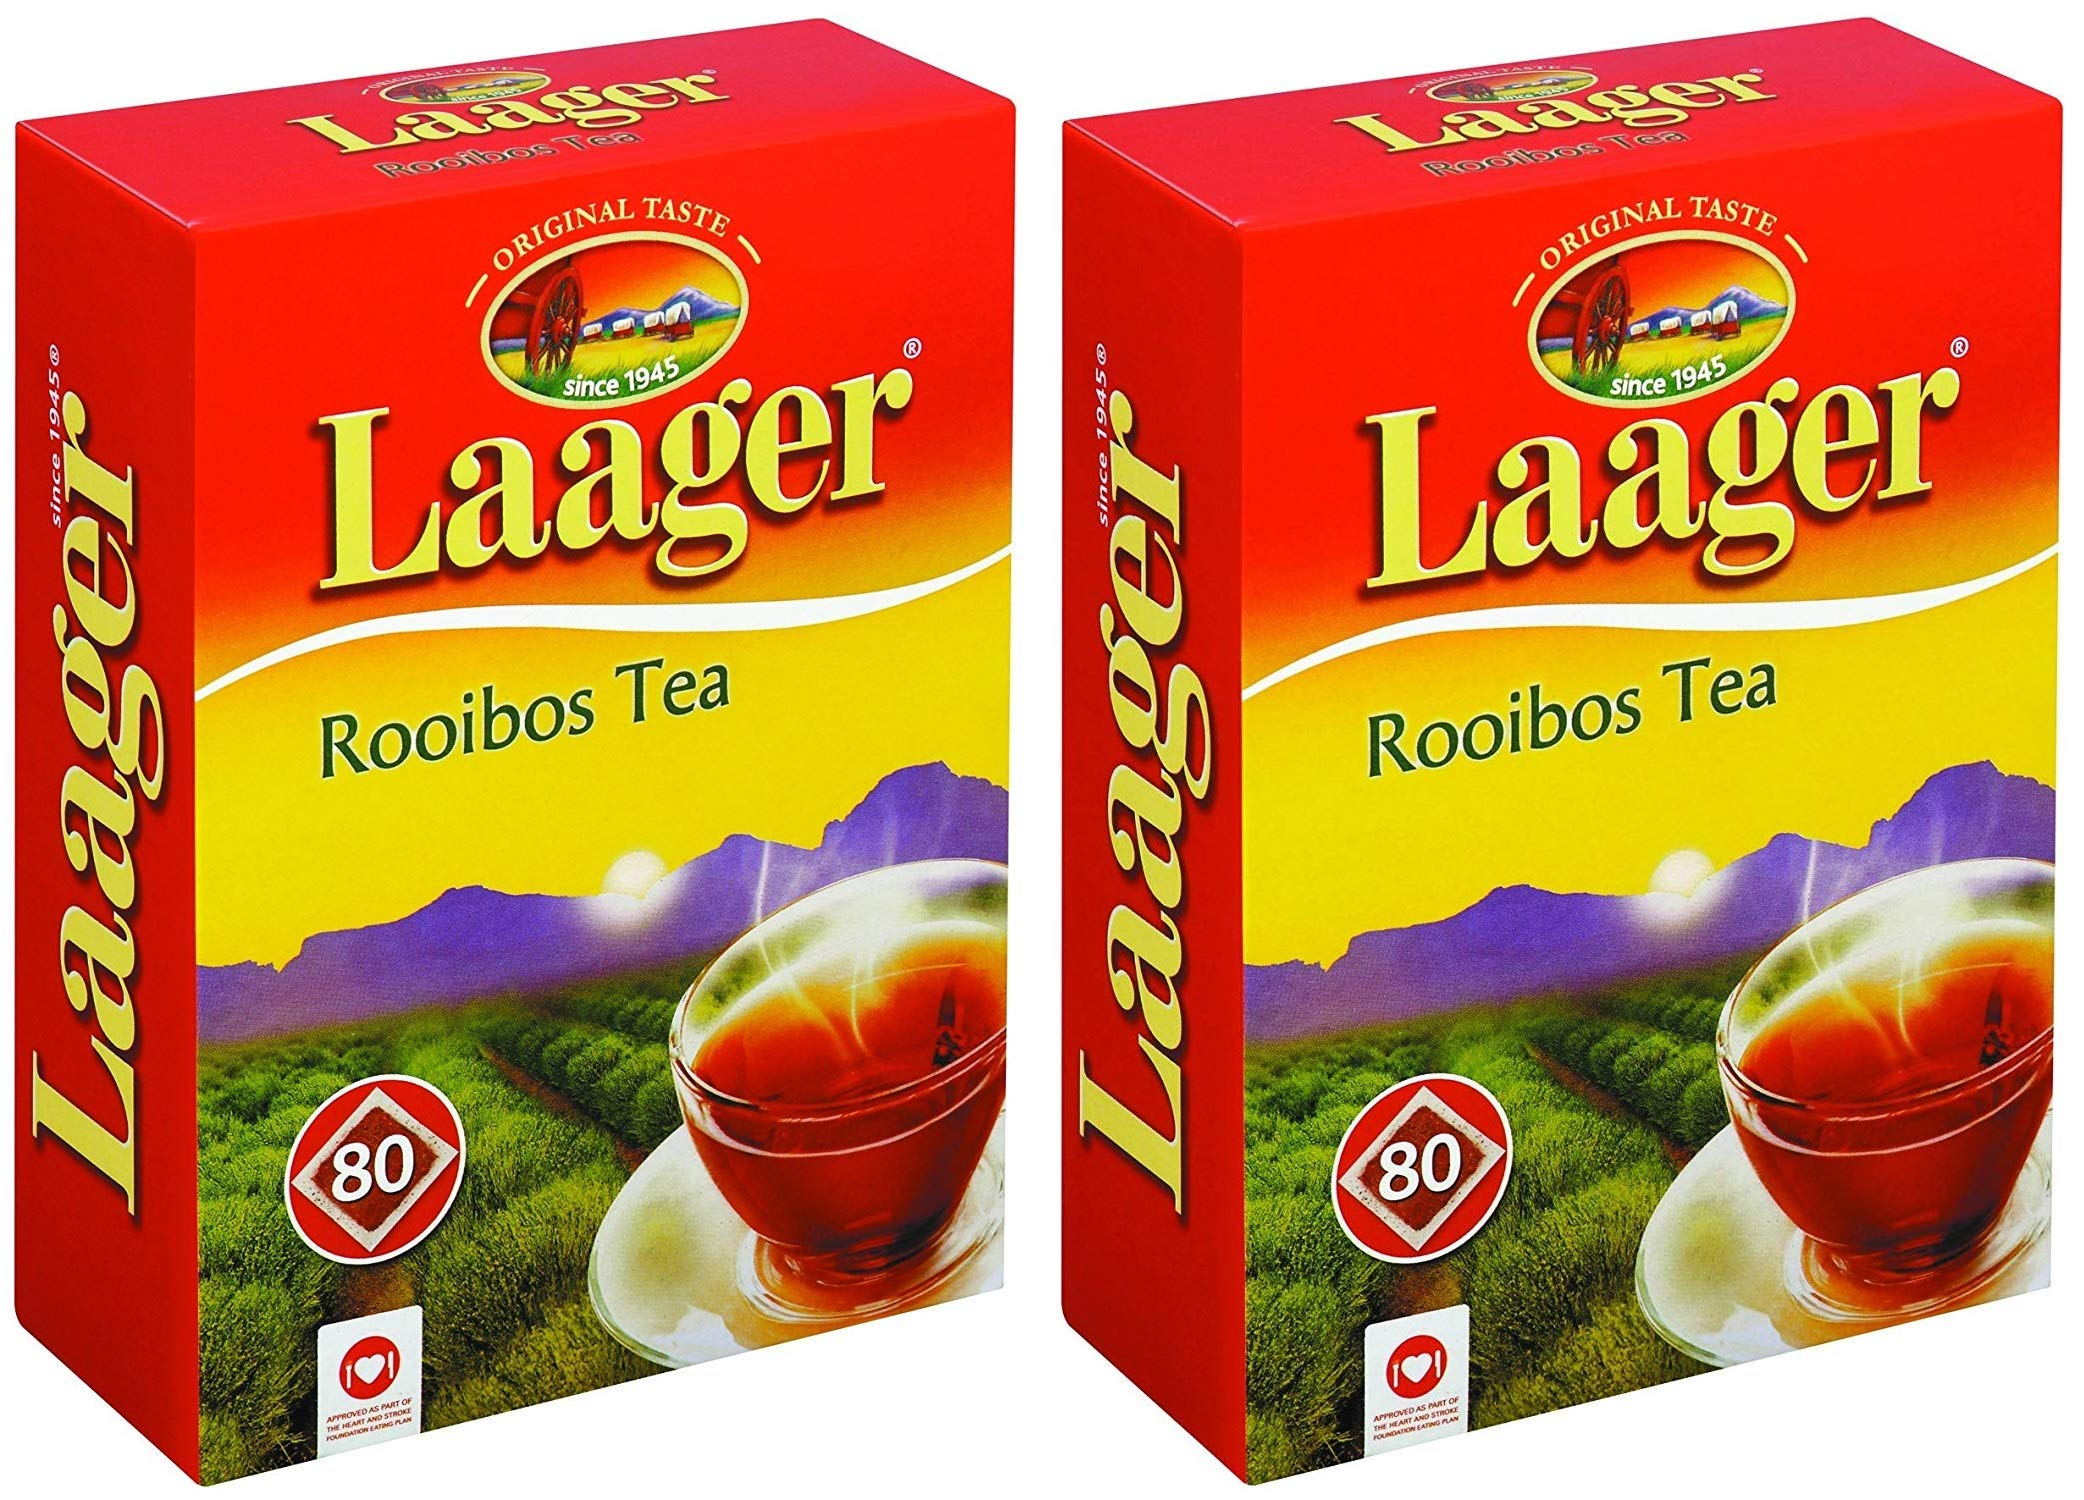 Laager South African Rooibos Tea - 80 count, 7 oz, 100% Natural Tea, Caffeine Free, Healthy and Pure, Red Bush Herbal Tea. Rich in Vitamins and Antioxidant (160 Count (Pack of 2))